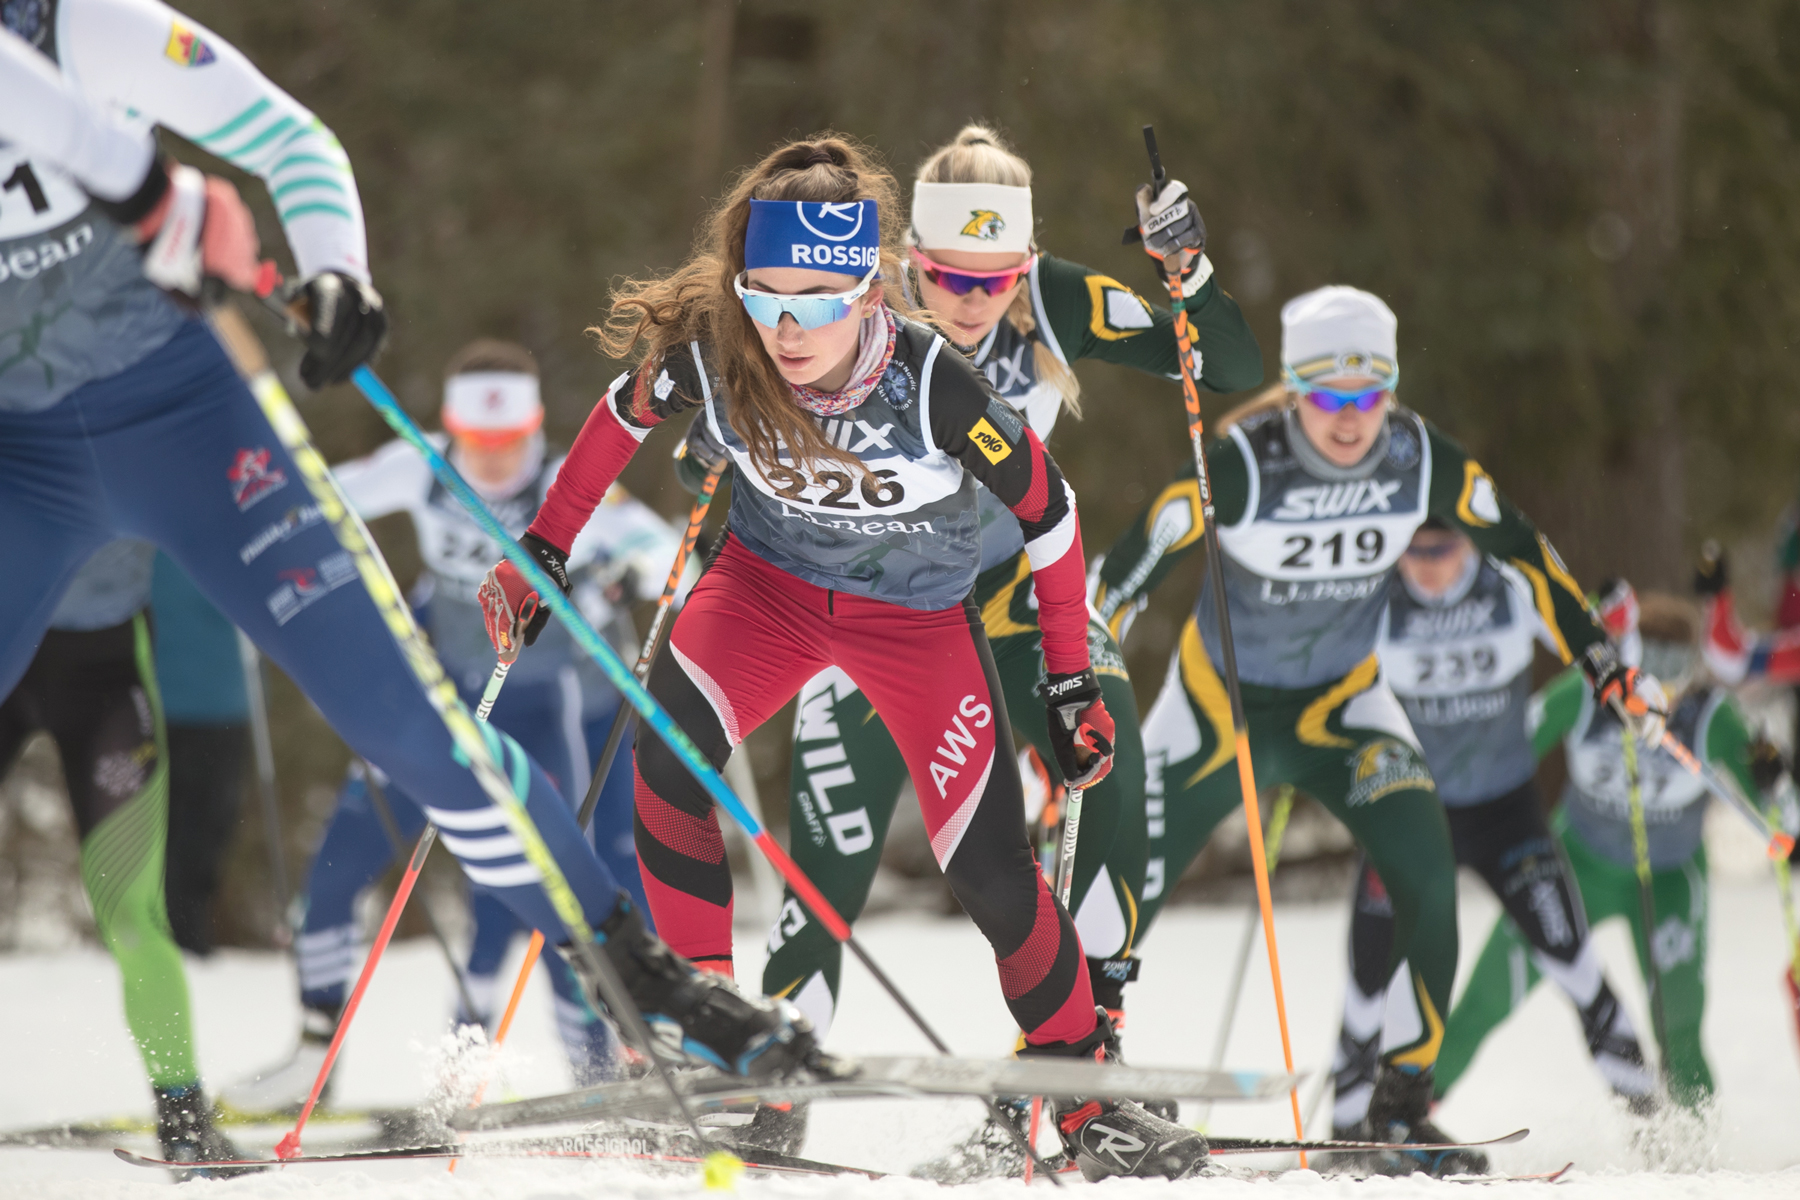 L.L.Bean U.S. Cross Country Championships